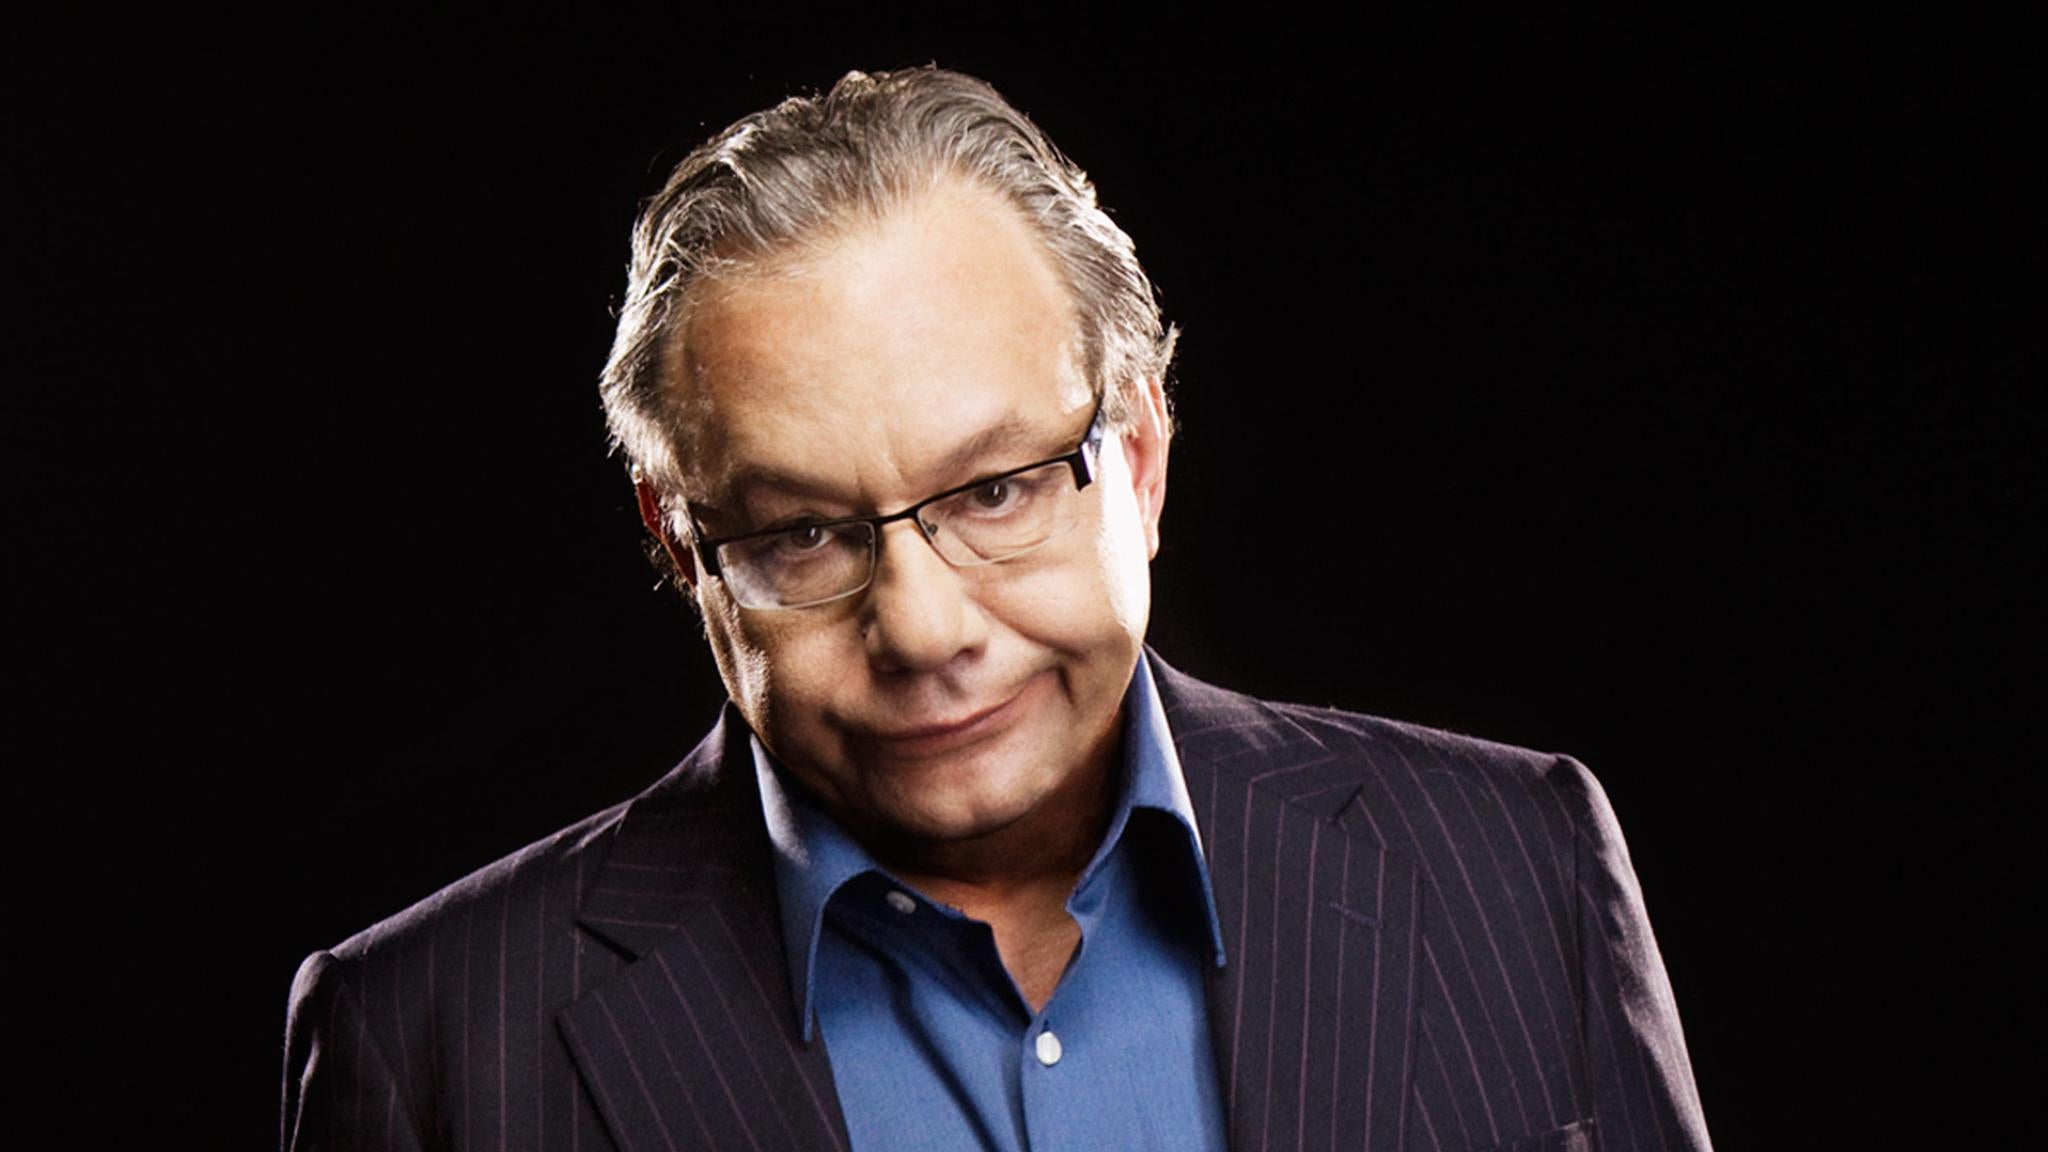 Lewis Black at Count Basie Center for the Arts - Red Bank, NJ 07701